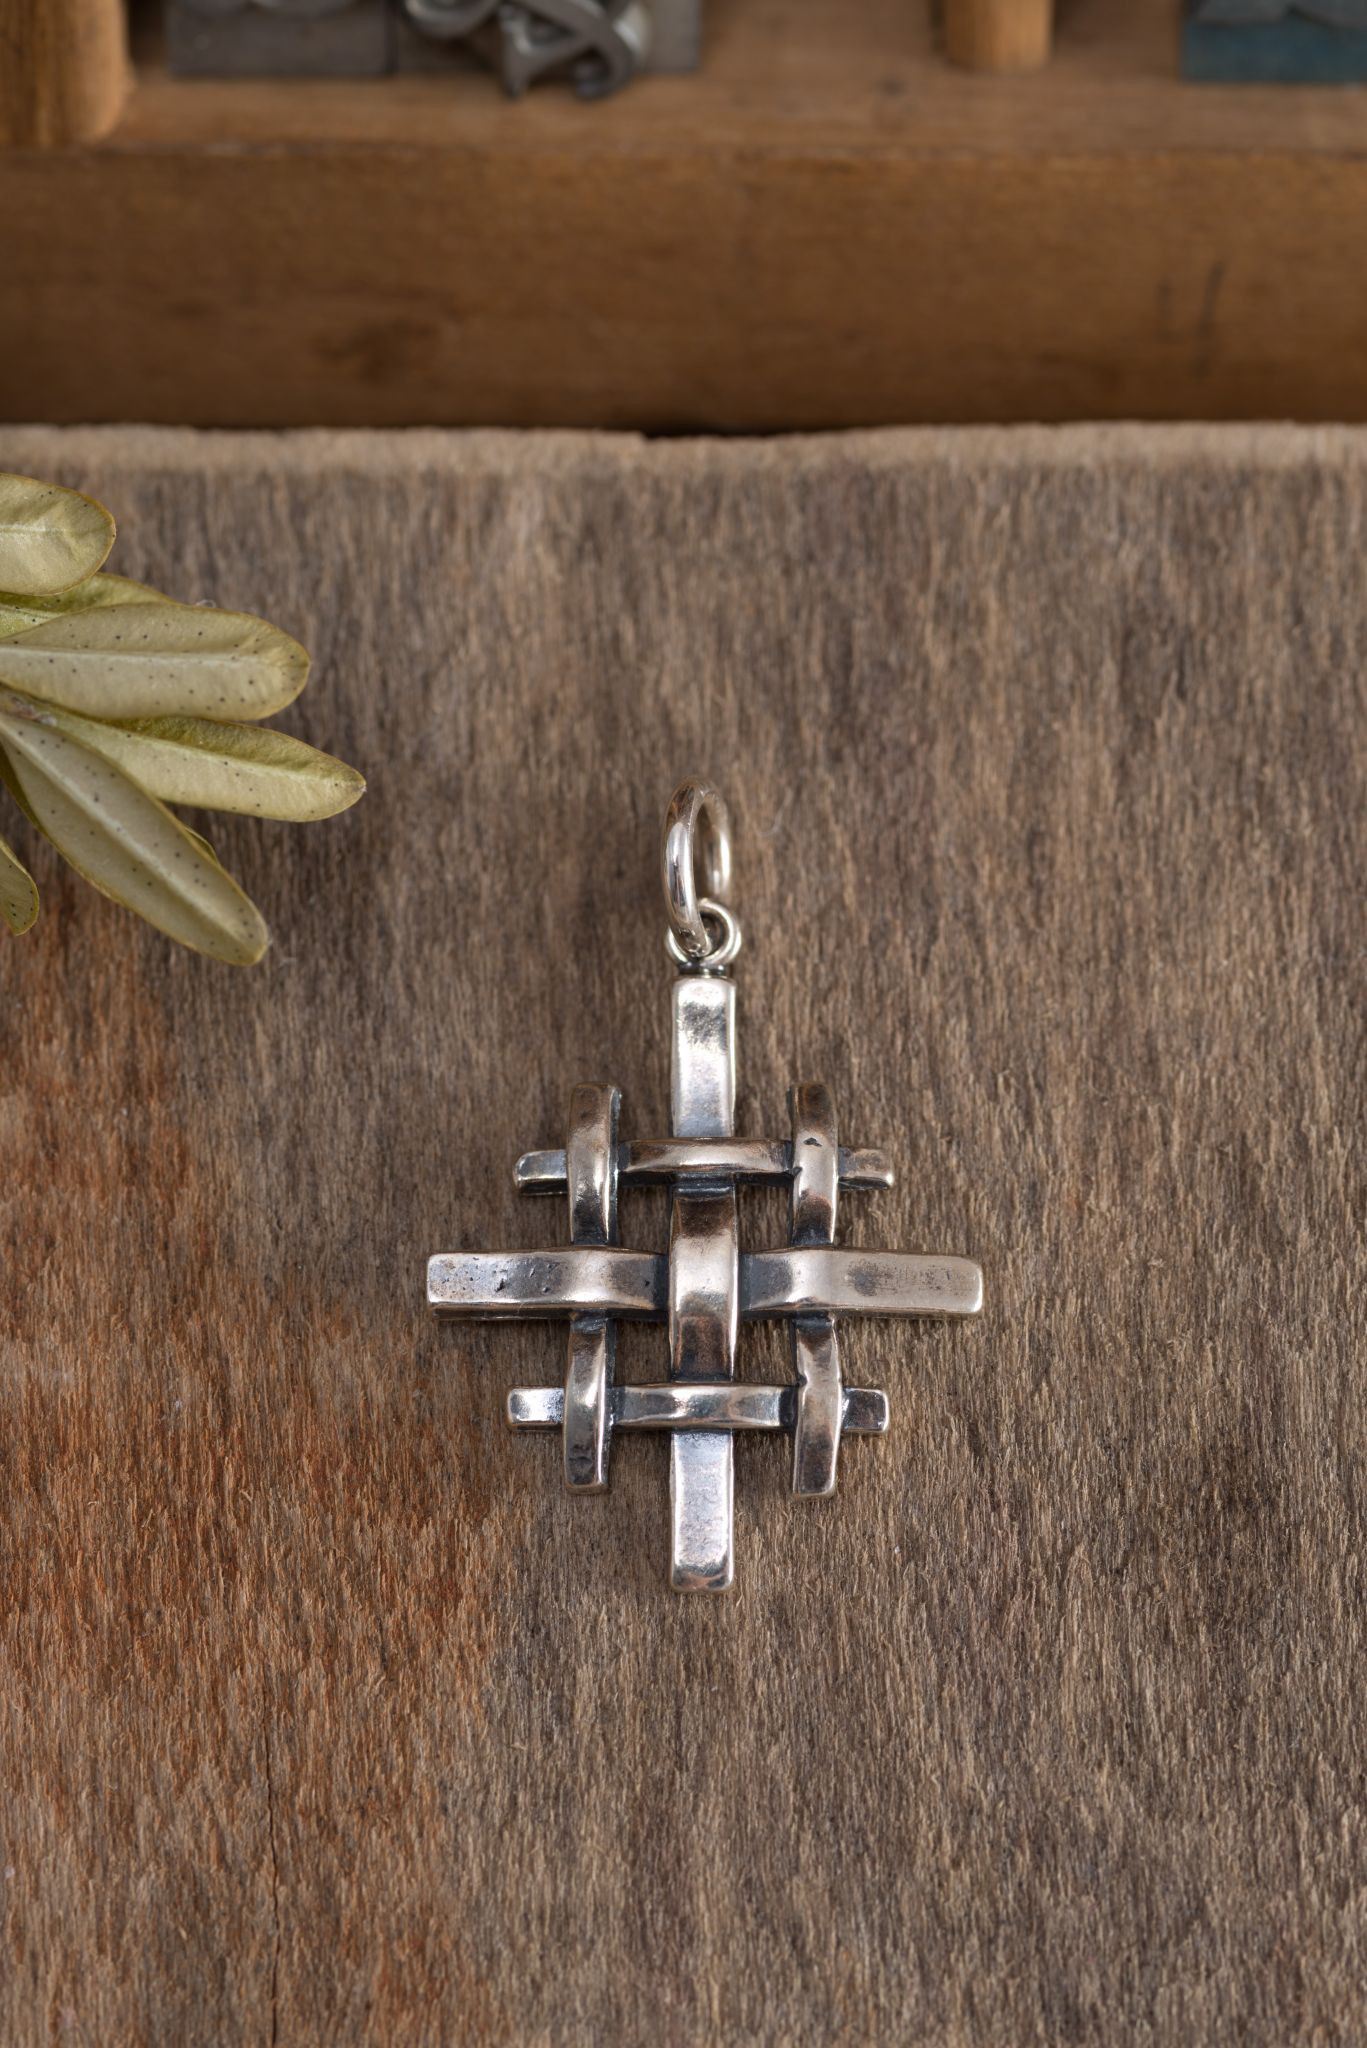 Our artistic version of a traditional jerusalem cross sterling our artistic version of a traditional jerusalem cross sterling silver woven pendant represents christs command fandeluxe Ebook collections